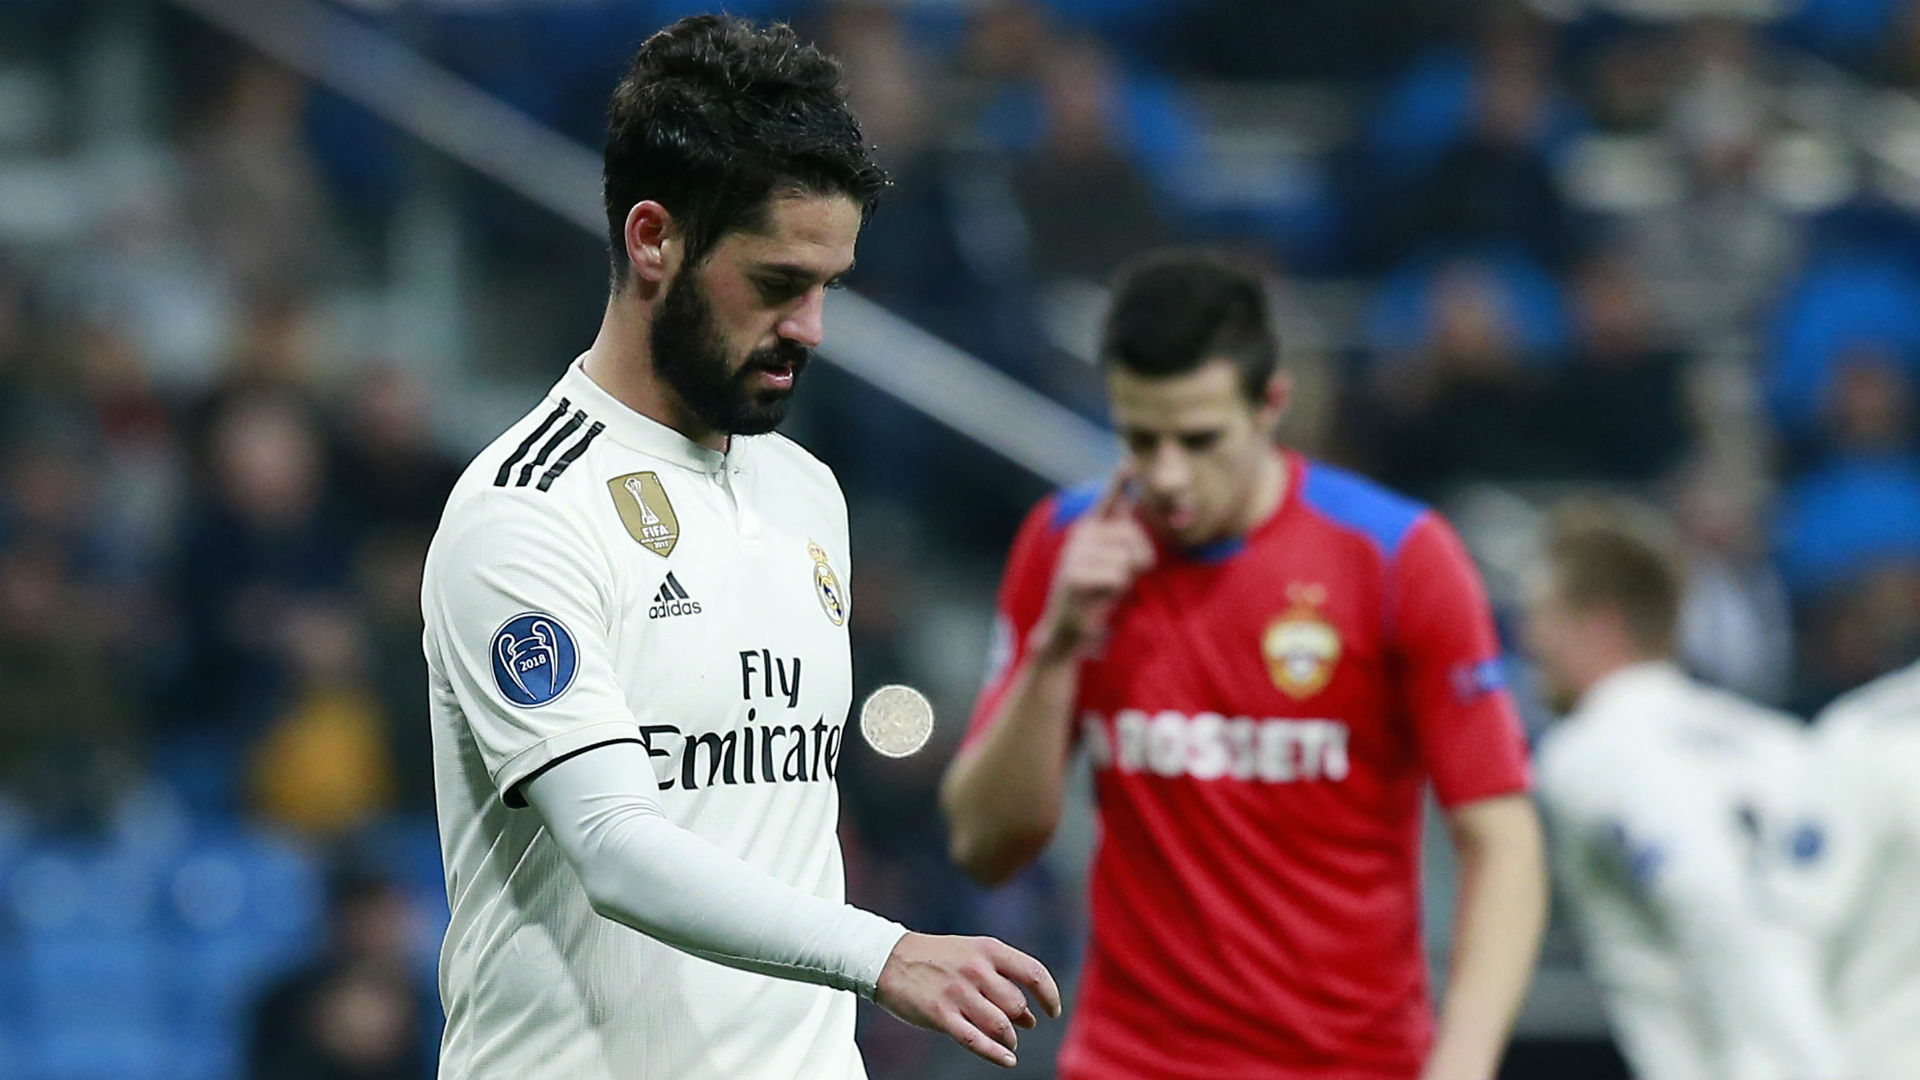 Valdano calls on Madrid and Isco to resolve differences